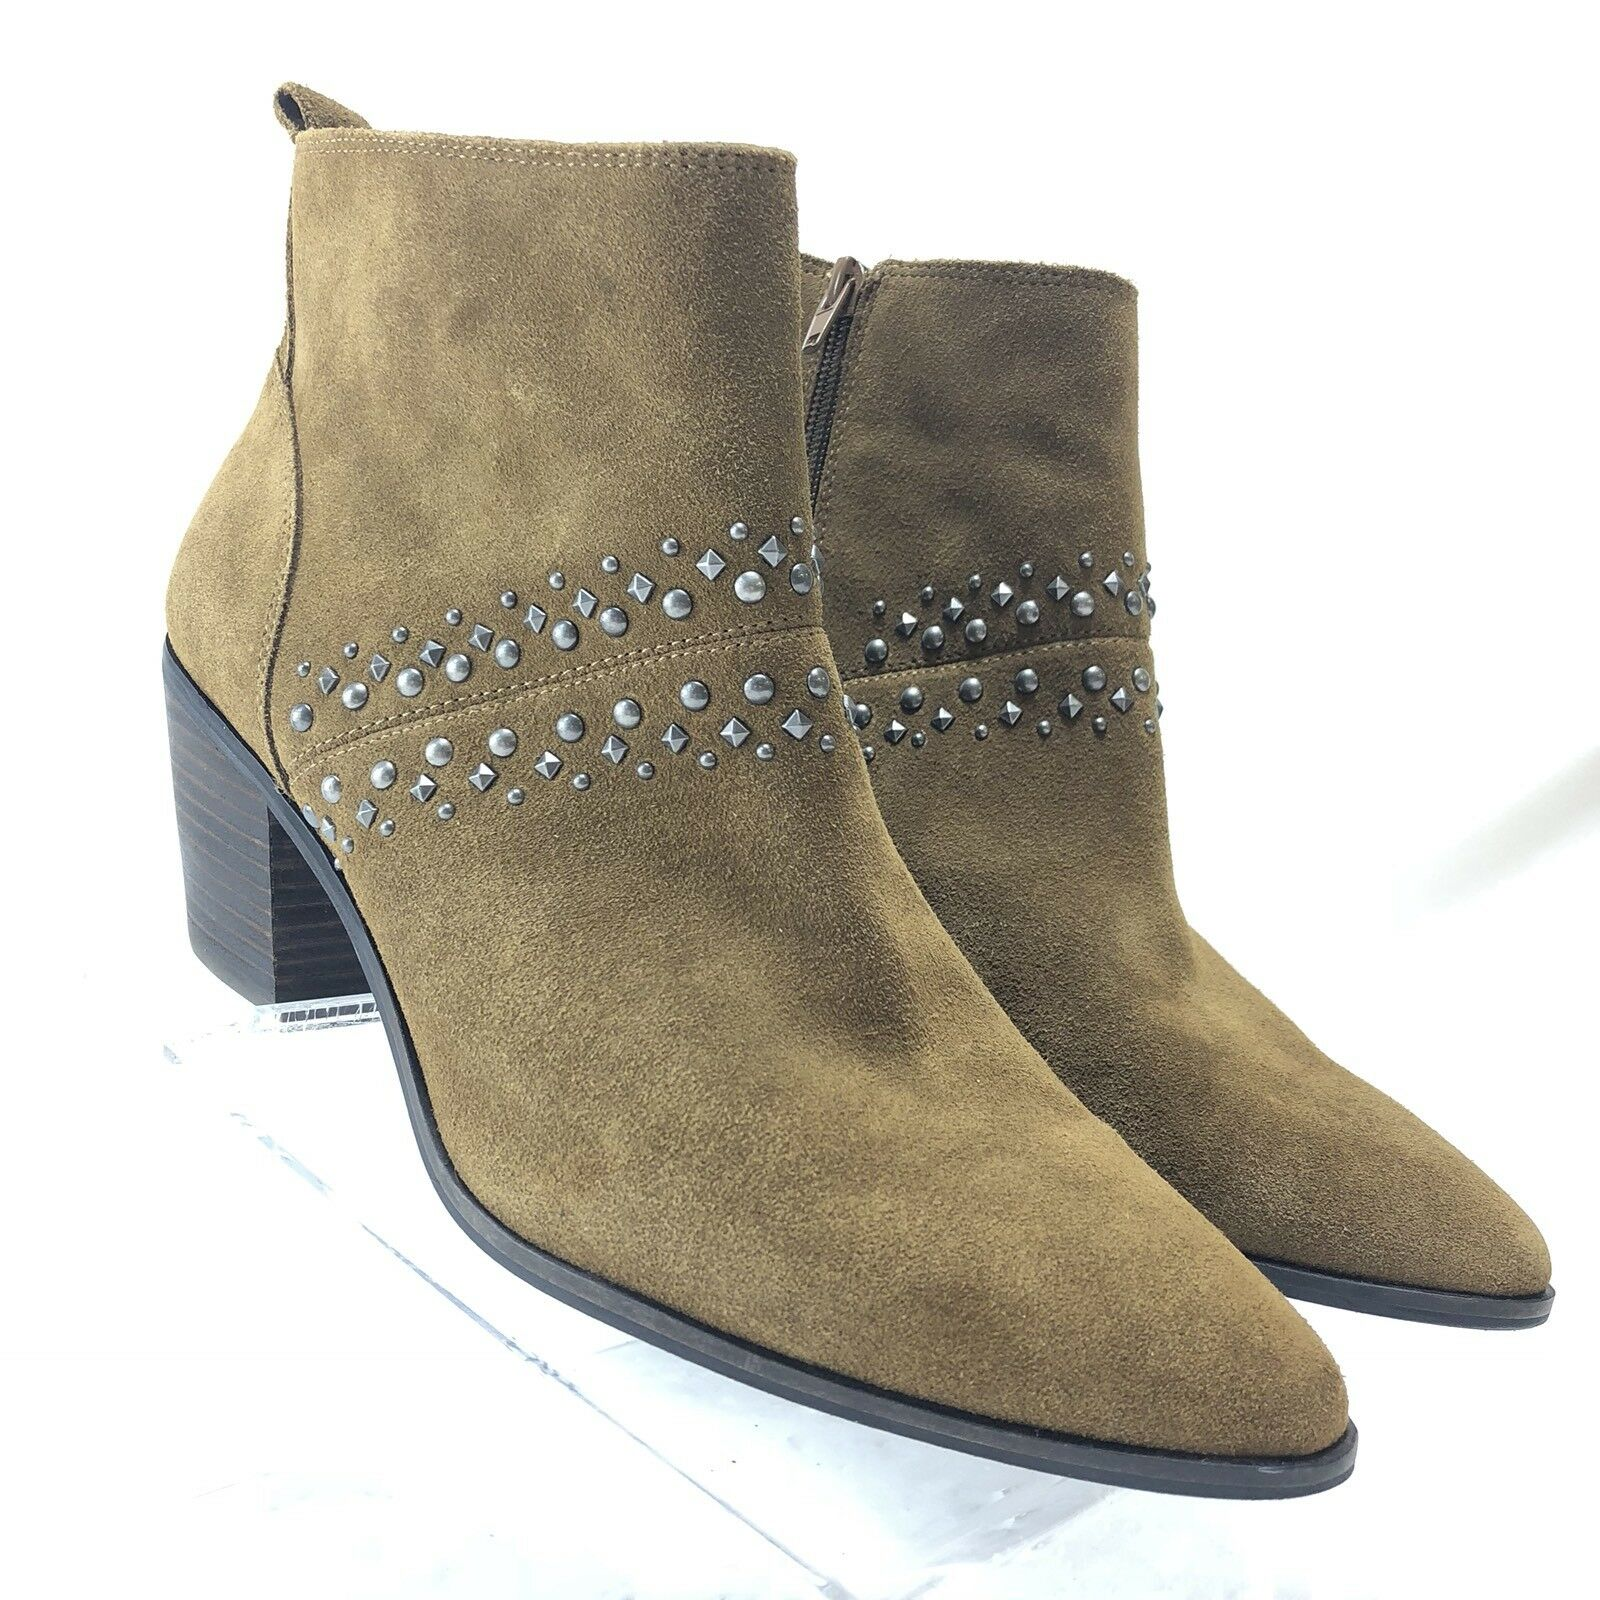 Lucky Brand Womens Brown Suede Booties Ankle Boots Beaded Size 10M/40